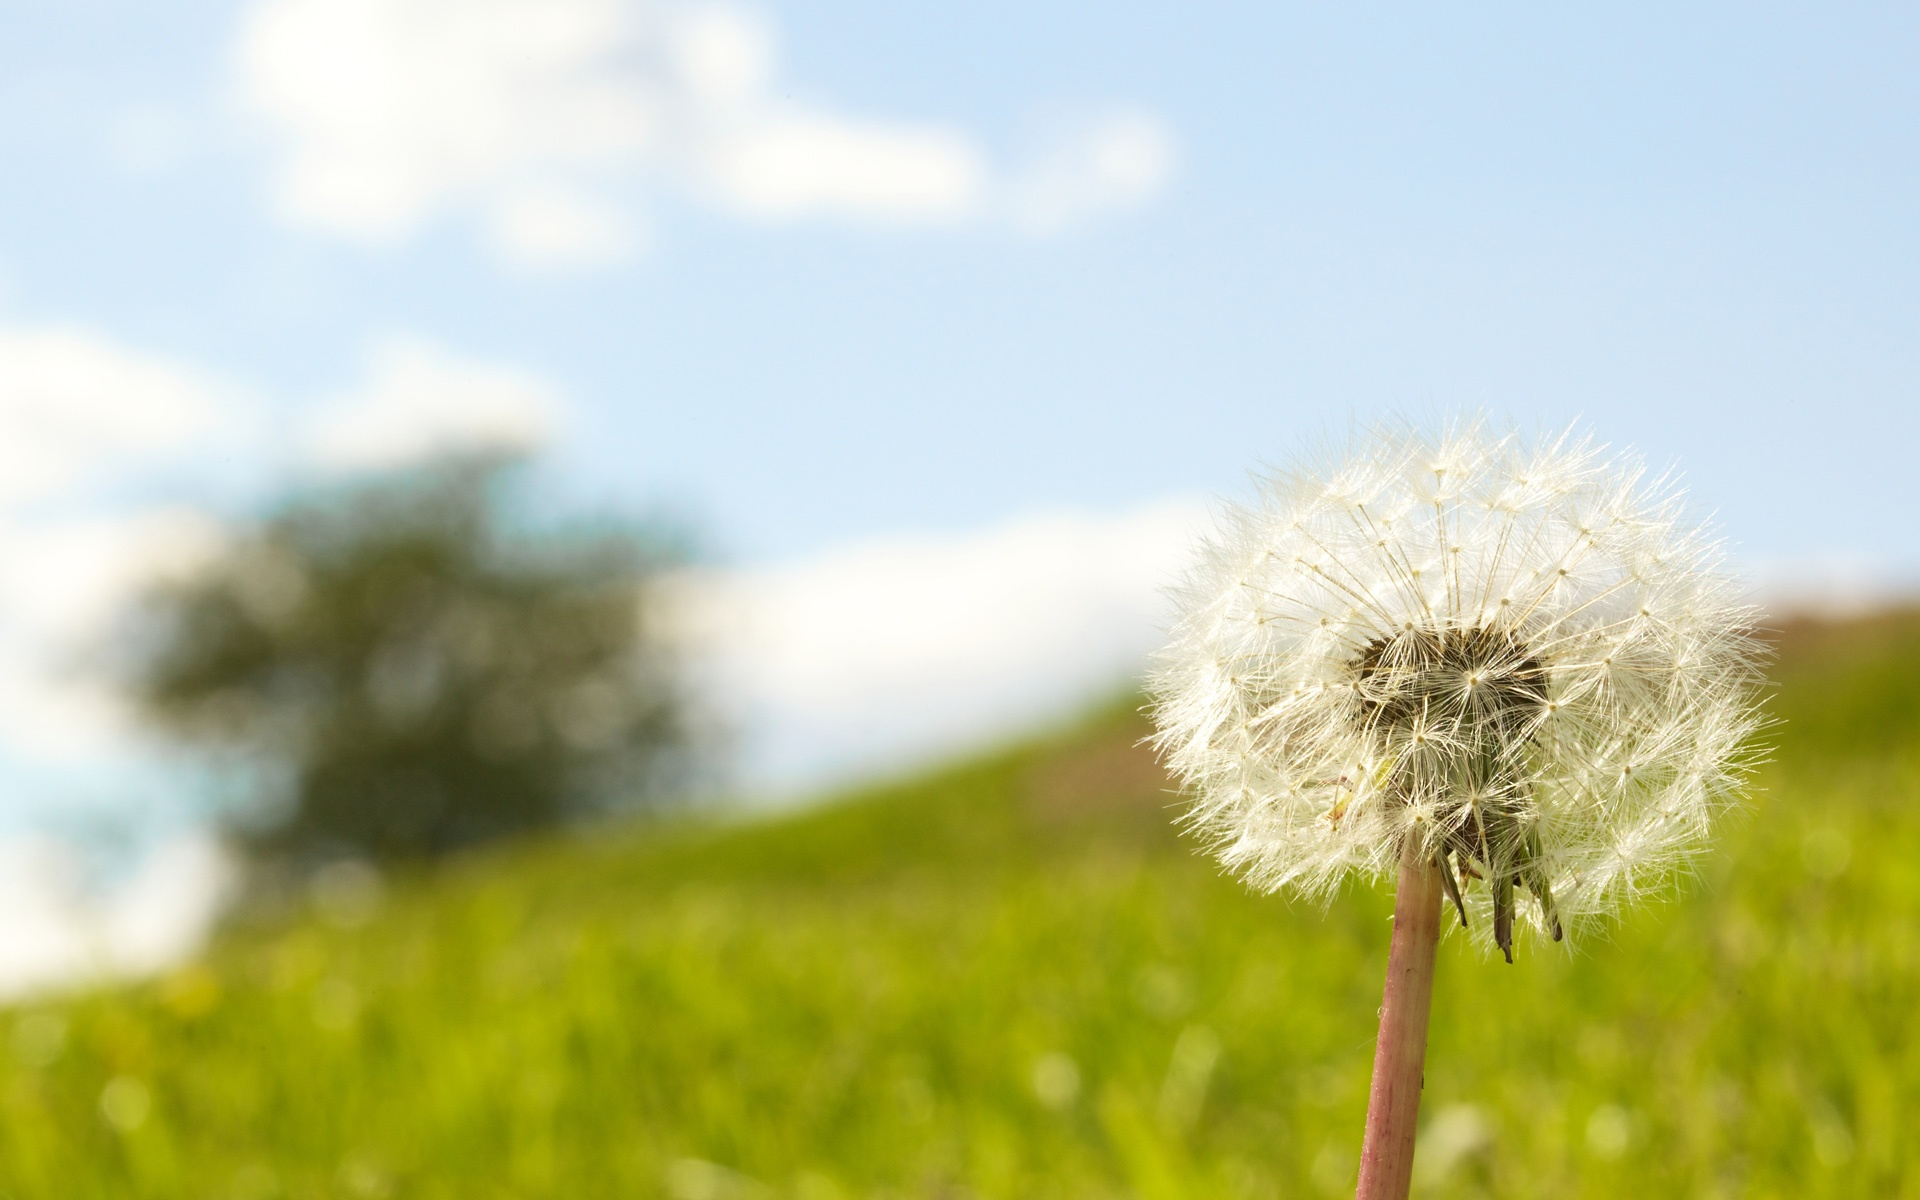 Lonely Dandelion 1920x1200 wallpaper download page 383757 1920x1200